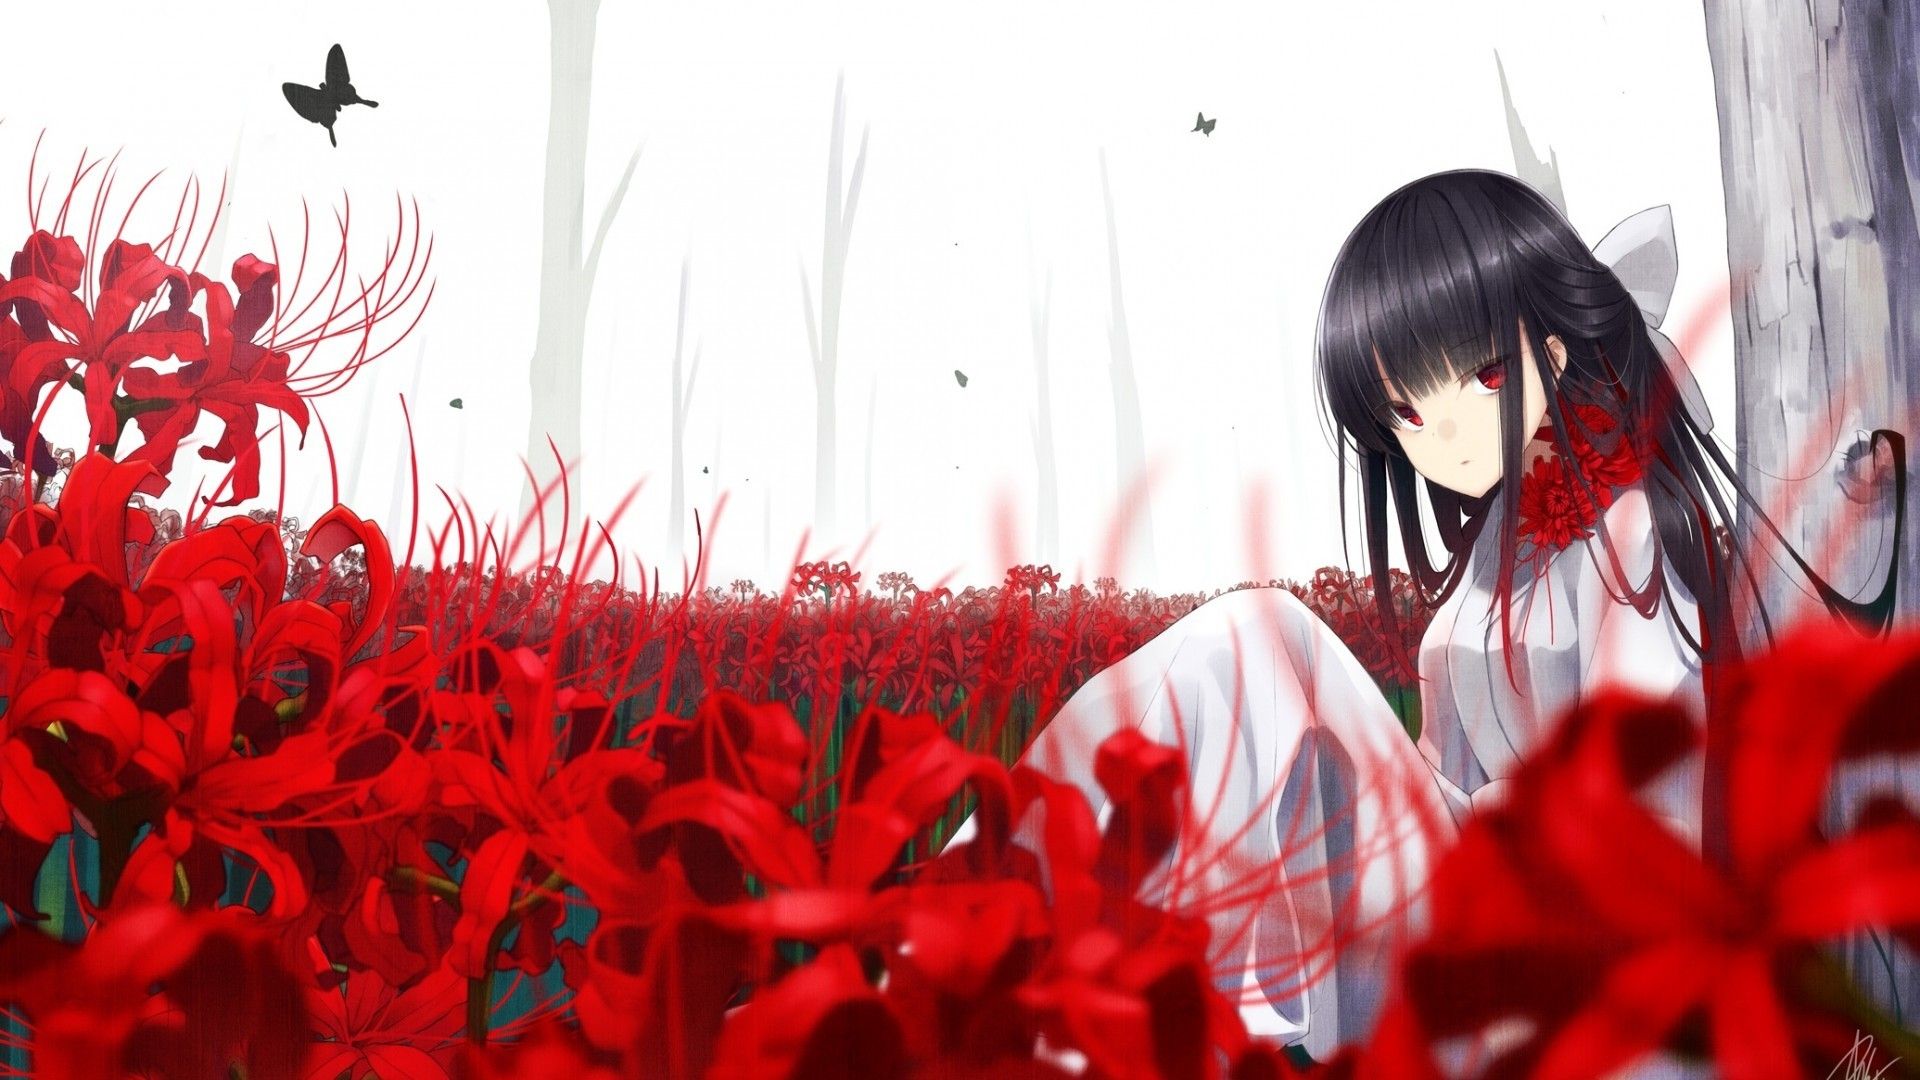 Red Eyes Anime Girl Butterfly Flowers Black Hair Red And Black Anime 1920x1080 Wallpaper Teahub Io